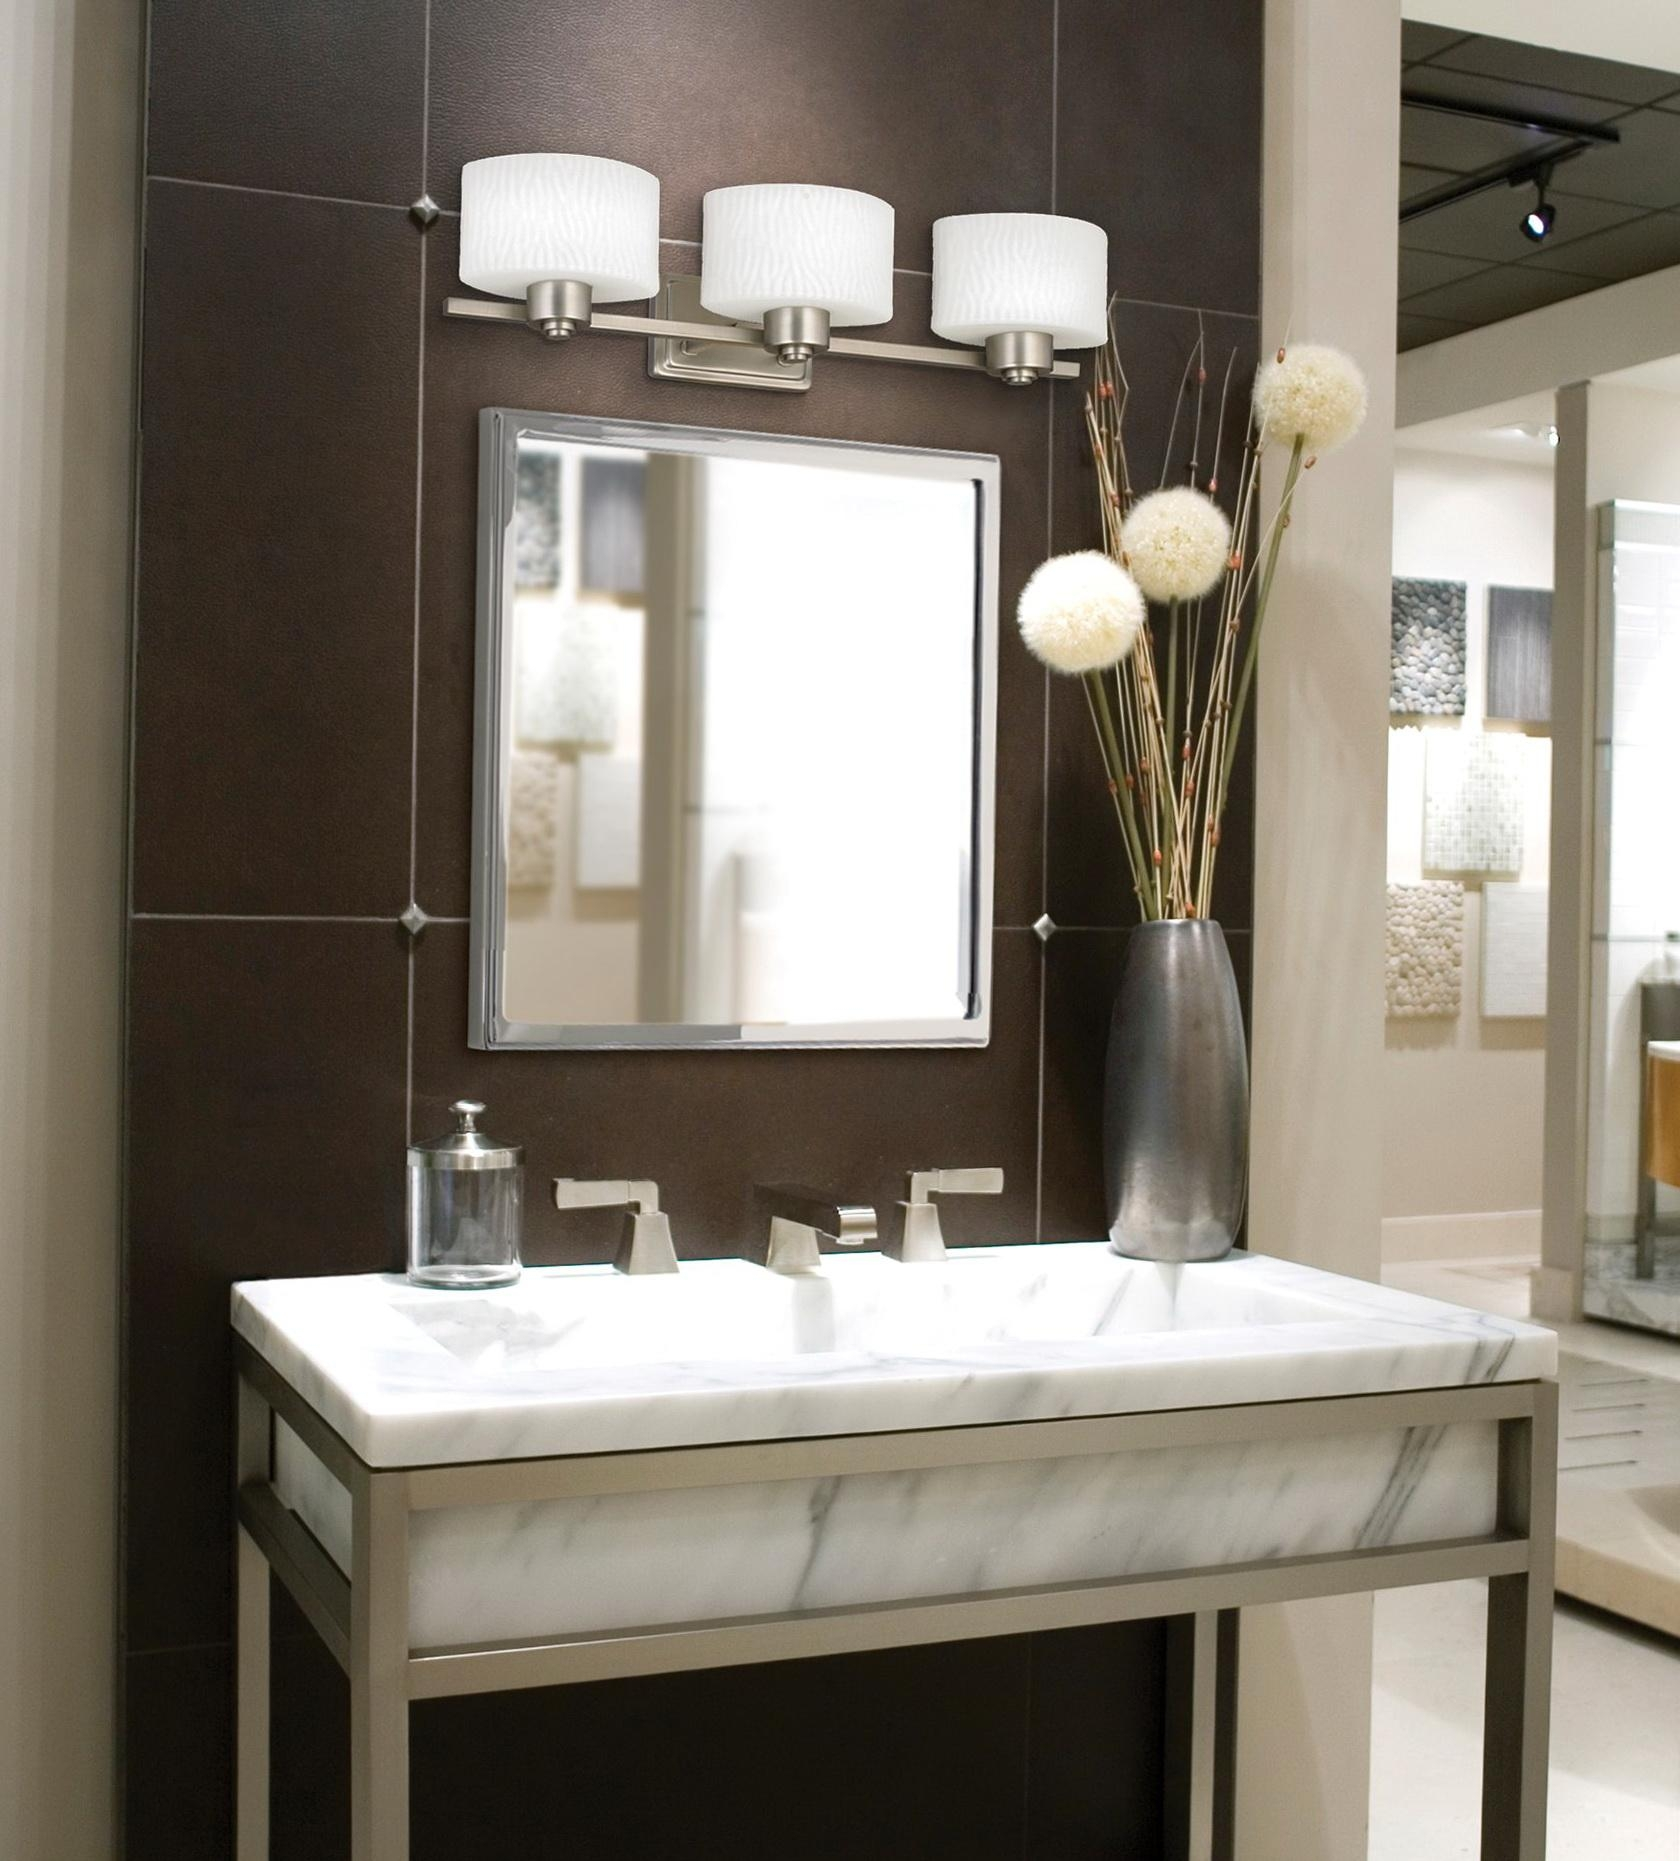 Wondrous Bathroom Vanity Mirrors For Com Ideas Brushed Nickel Intended For Bathroom Cabinets Mirrors (View 20 of 20)